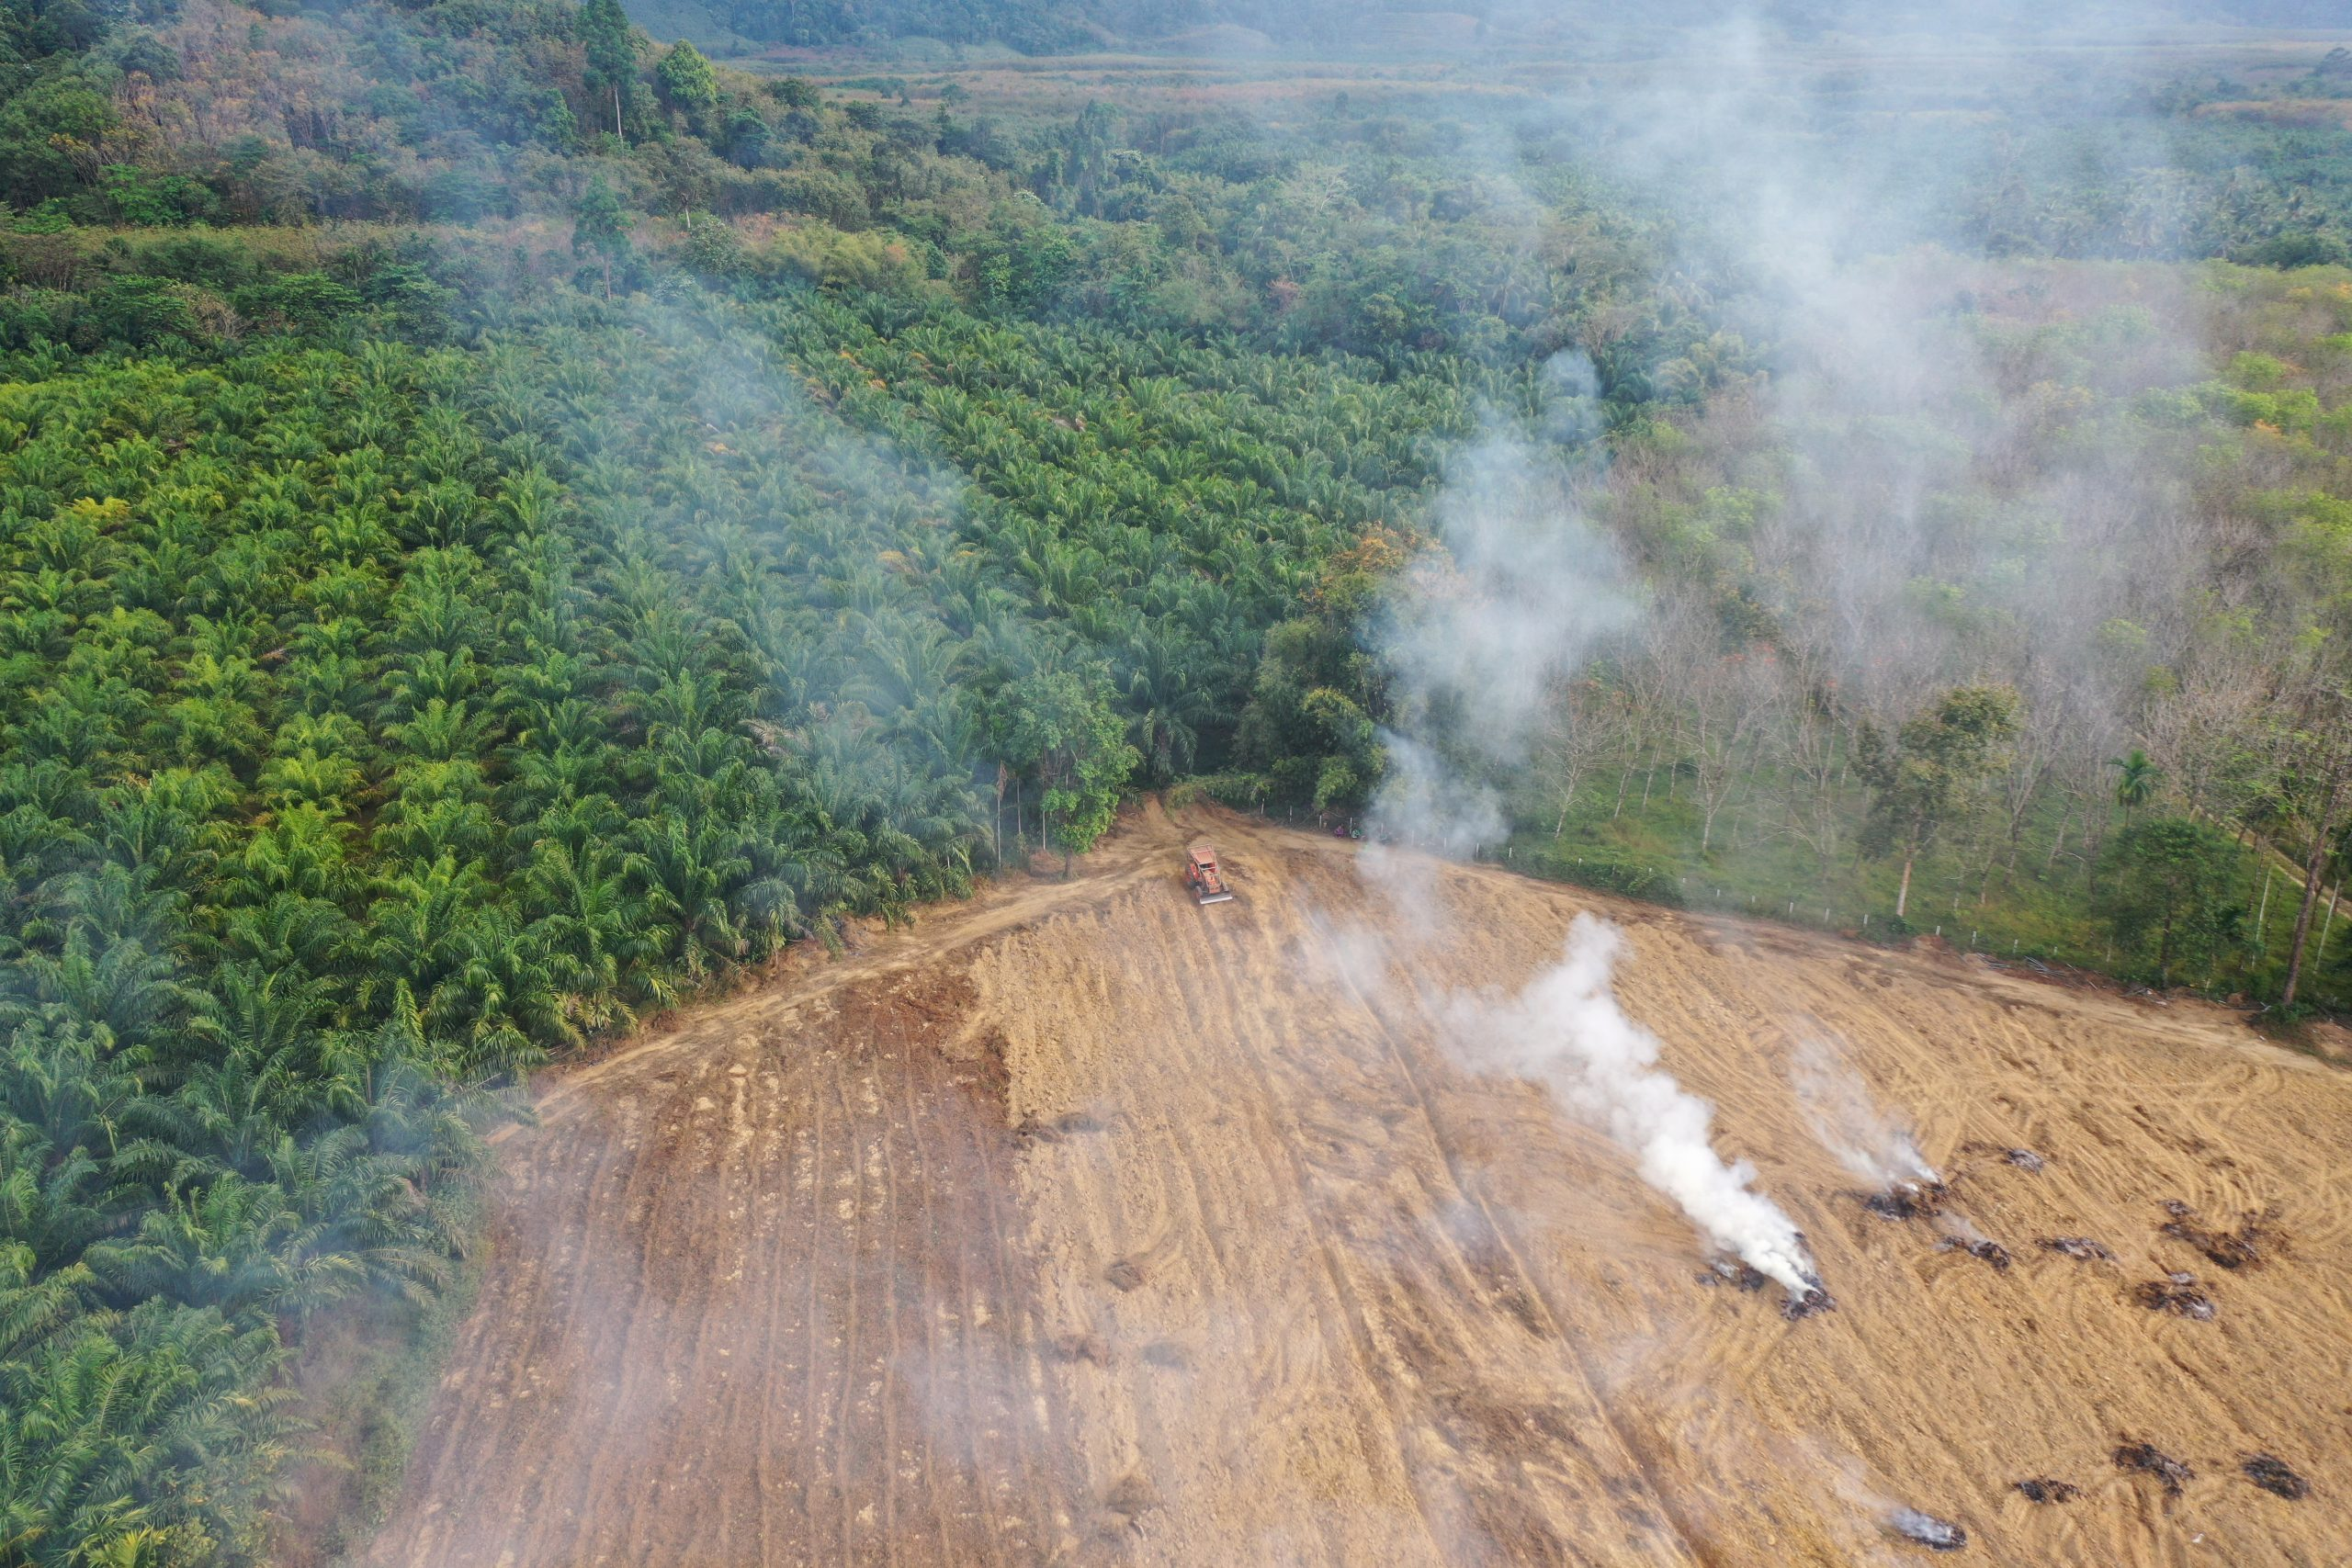 Deforestation and fire as rainforest burned to make way for oil palm plantation